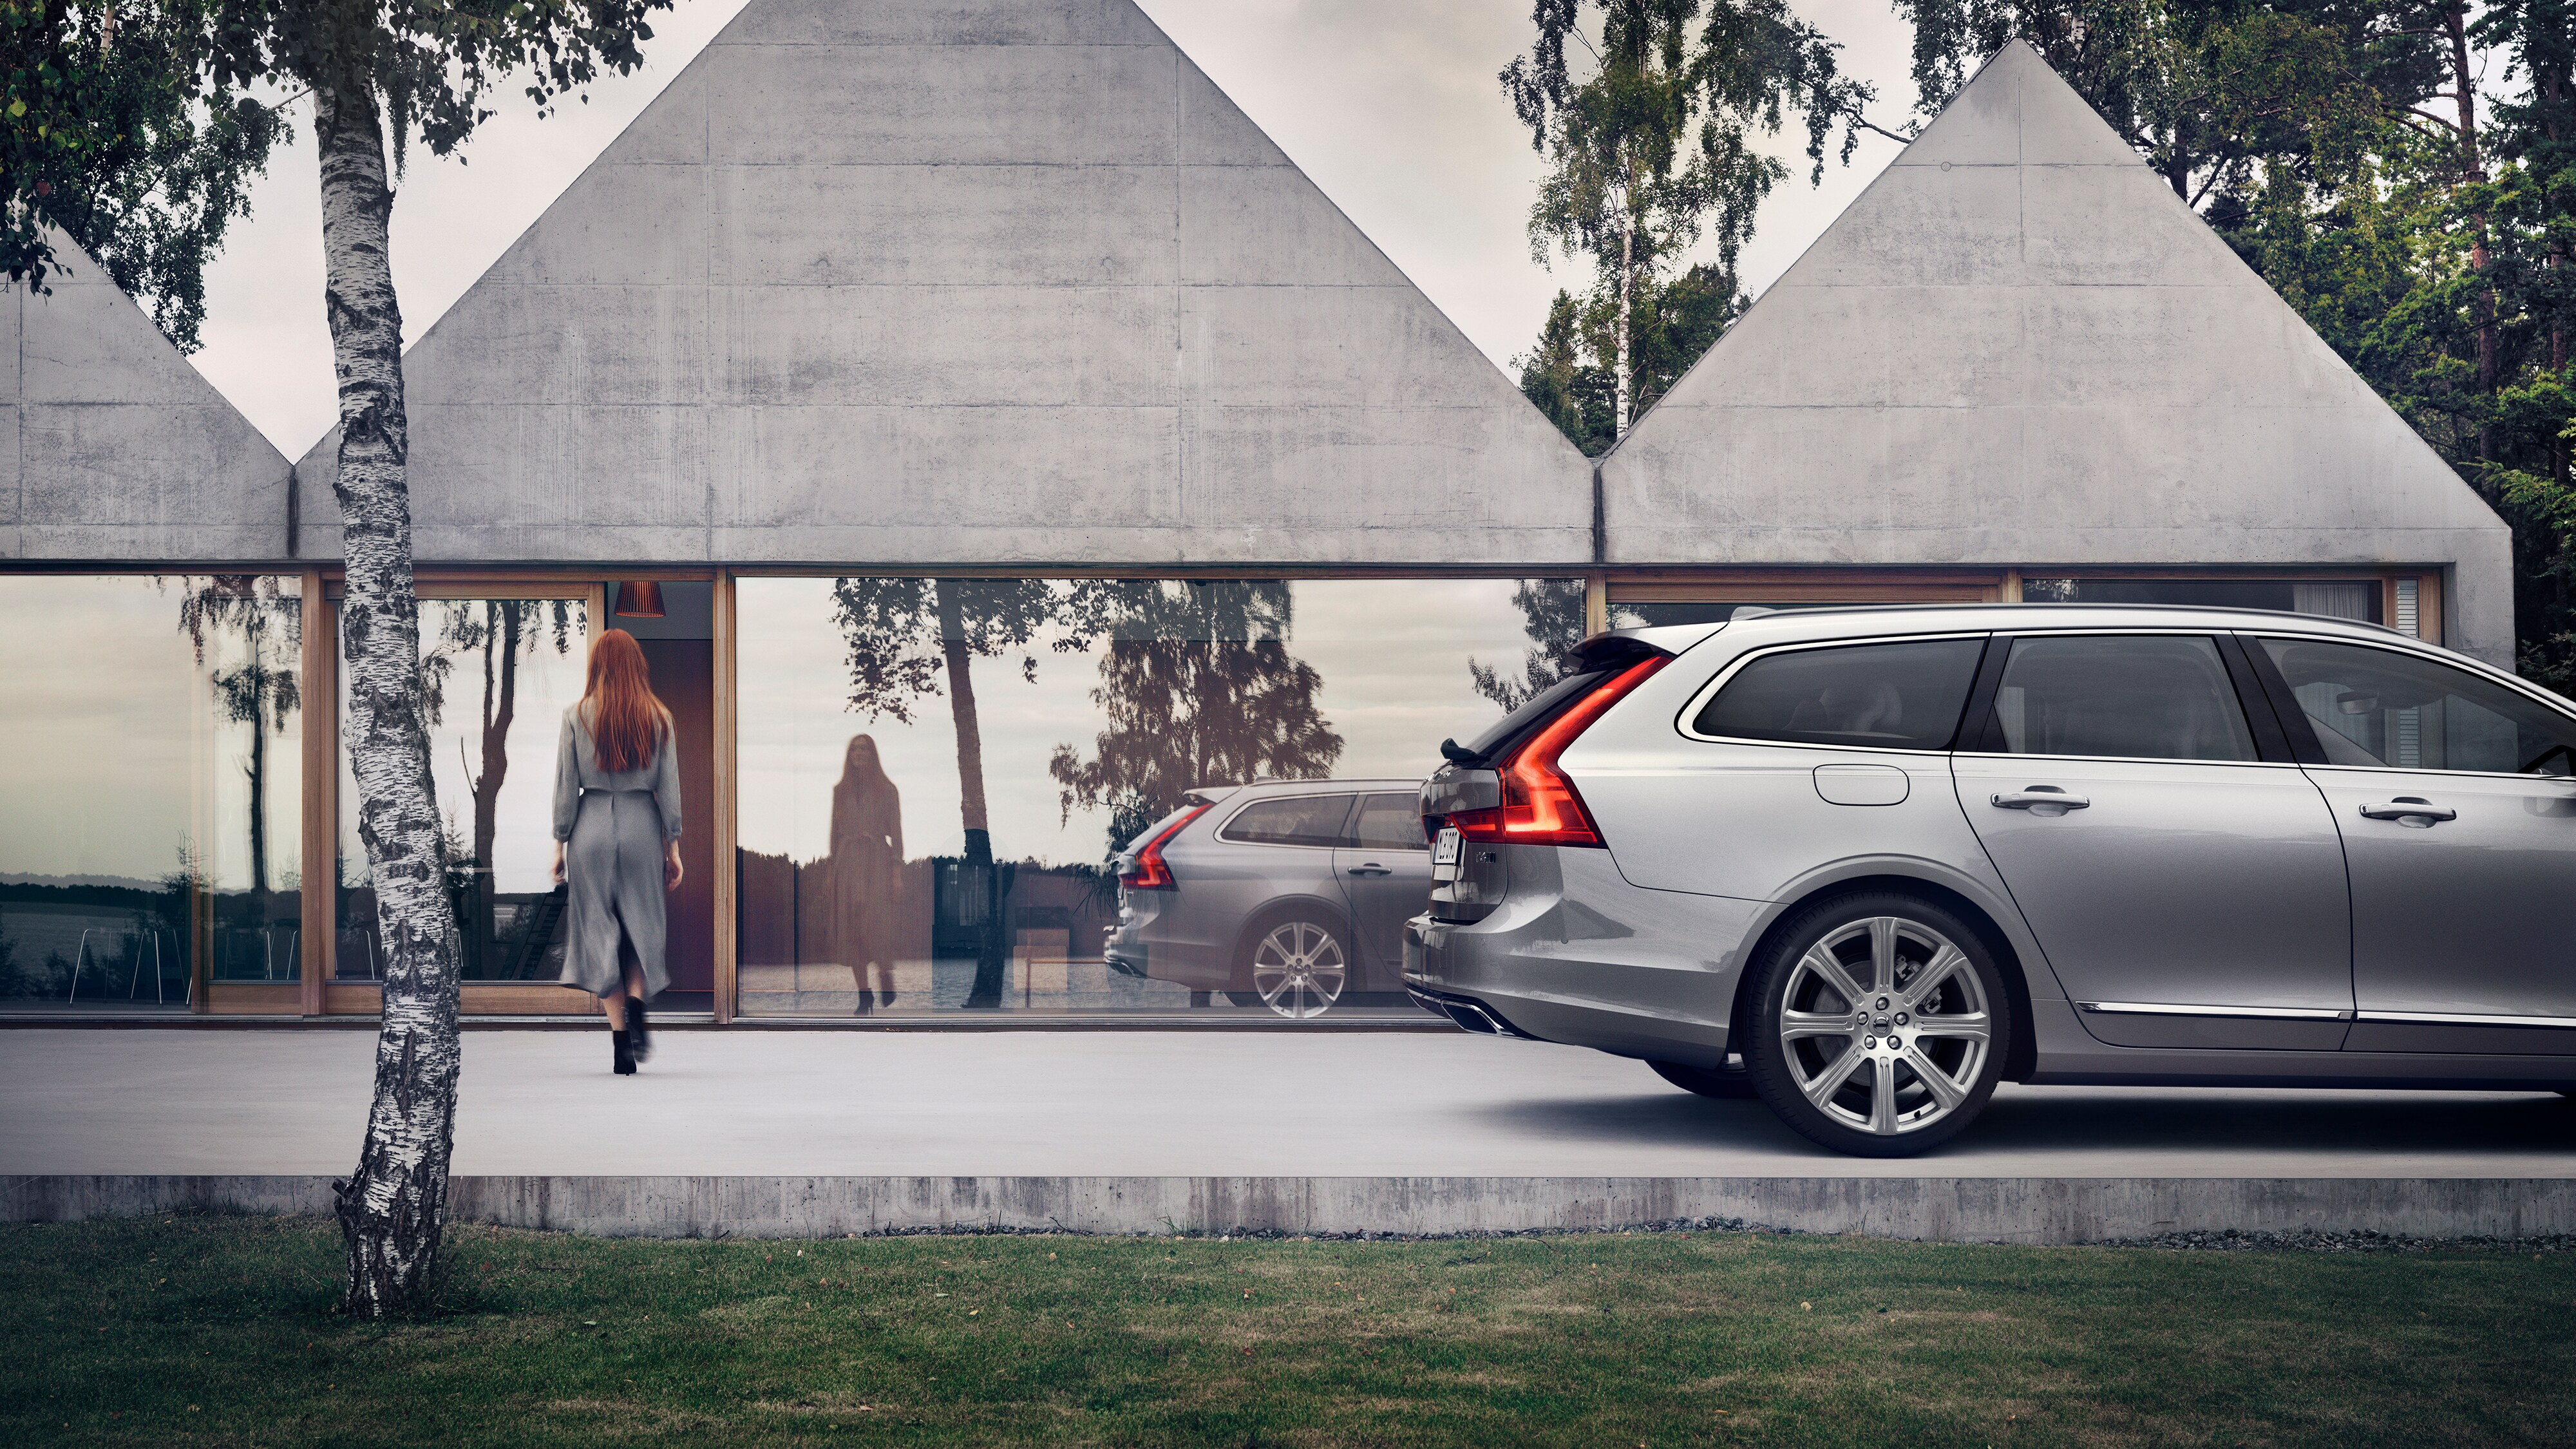 The Volvo V90 Esate car parked on a driveway of a modern home